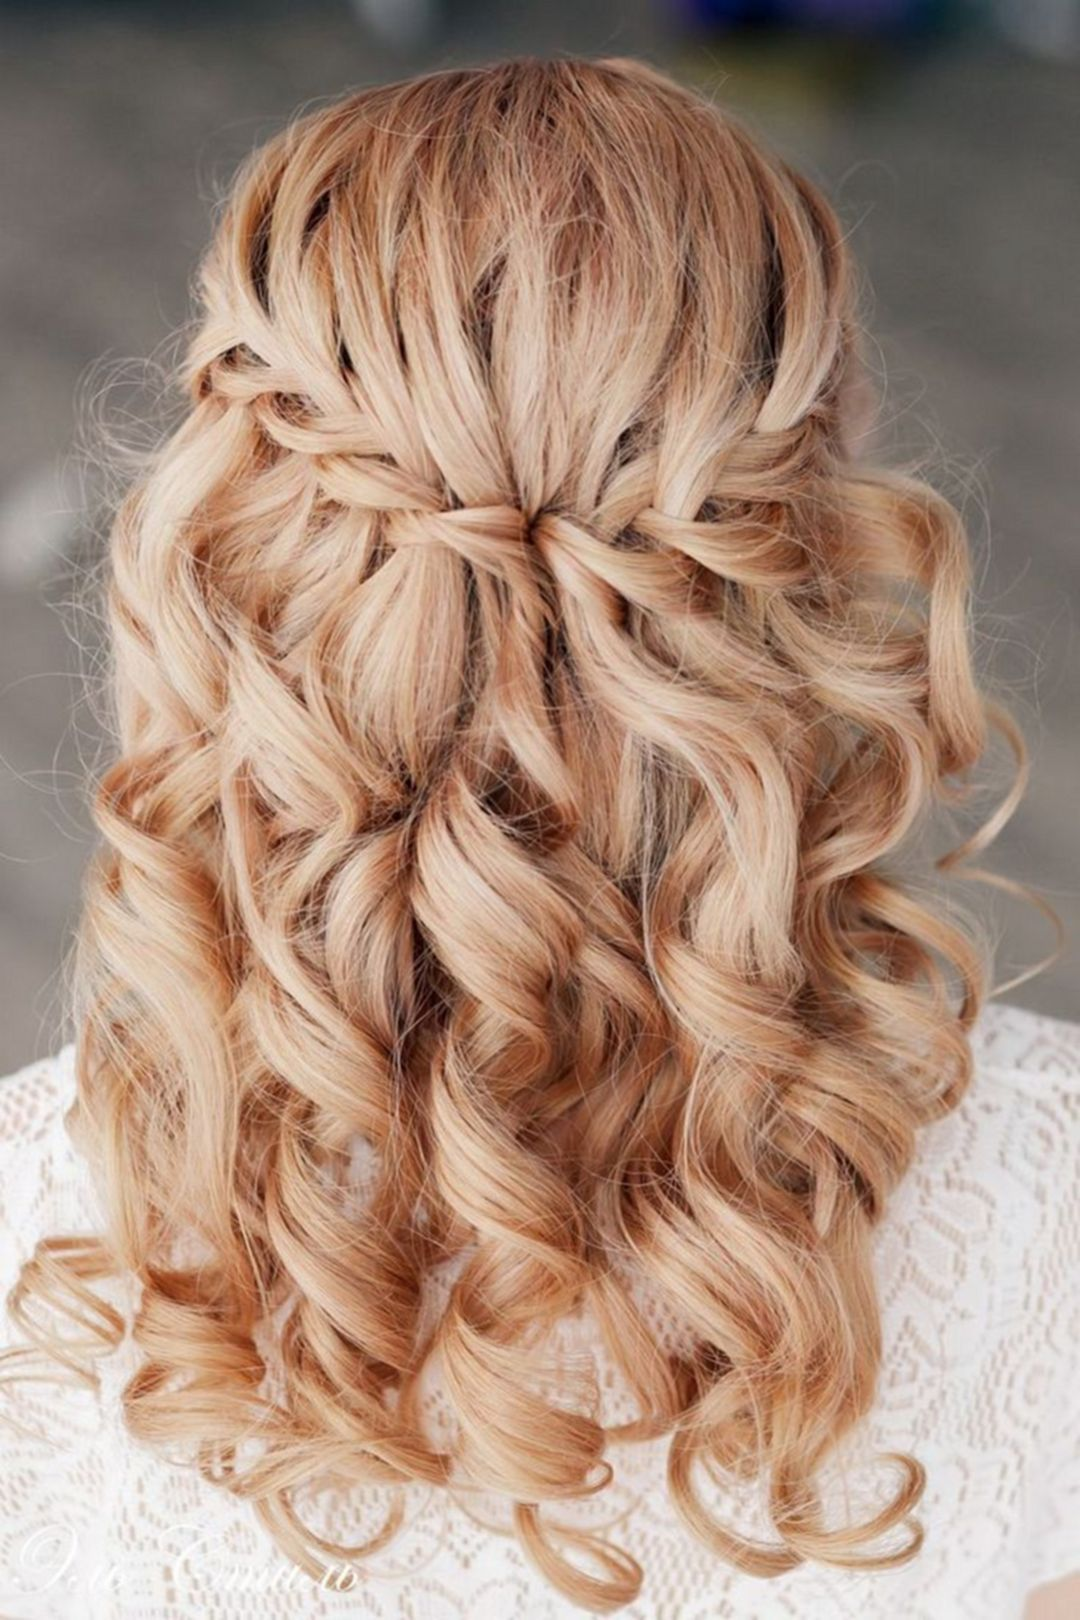 Cozy beautiful semiformal women hairstyle ideas for party